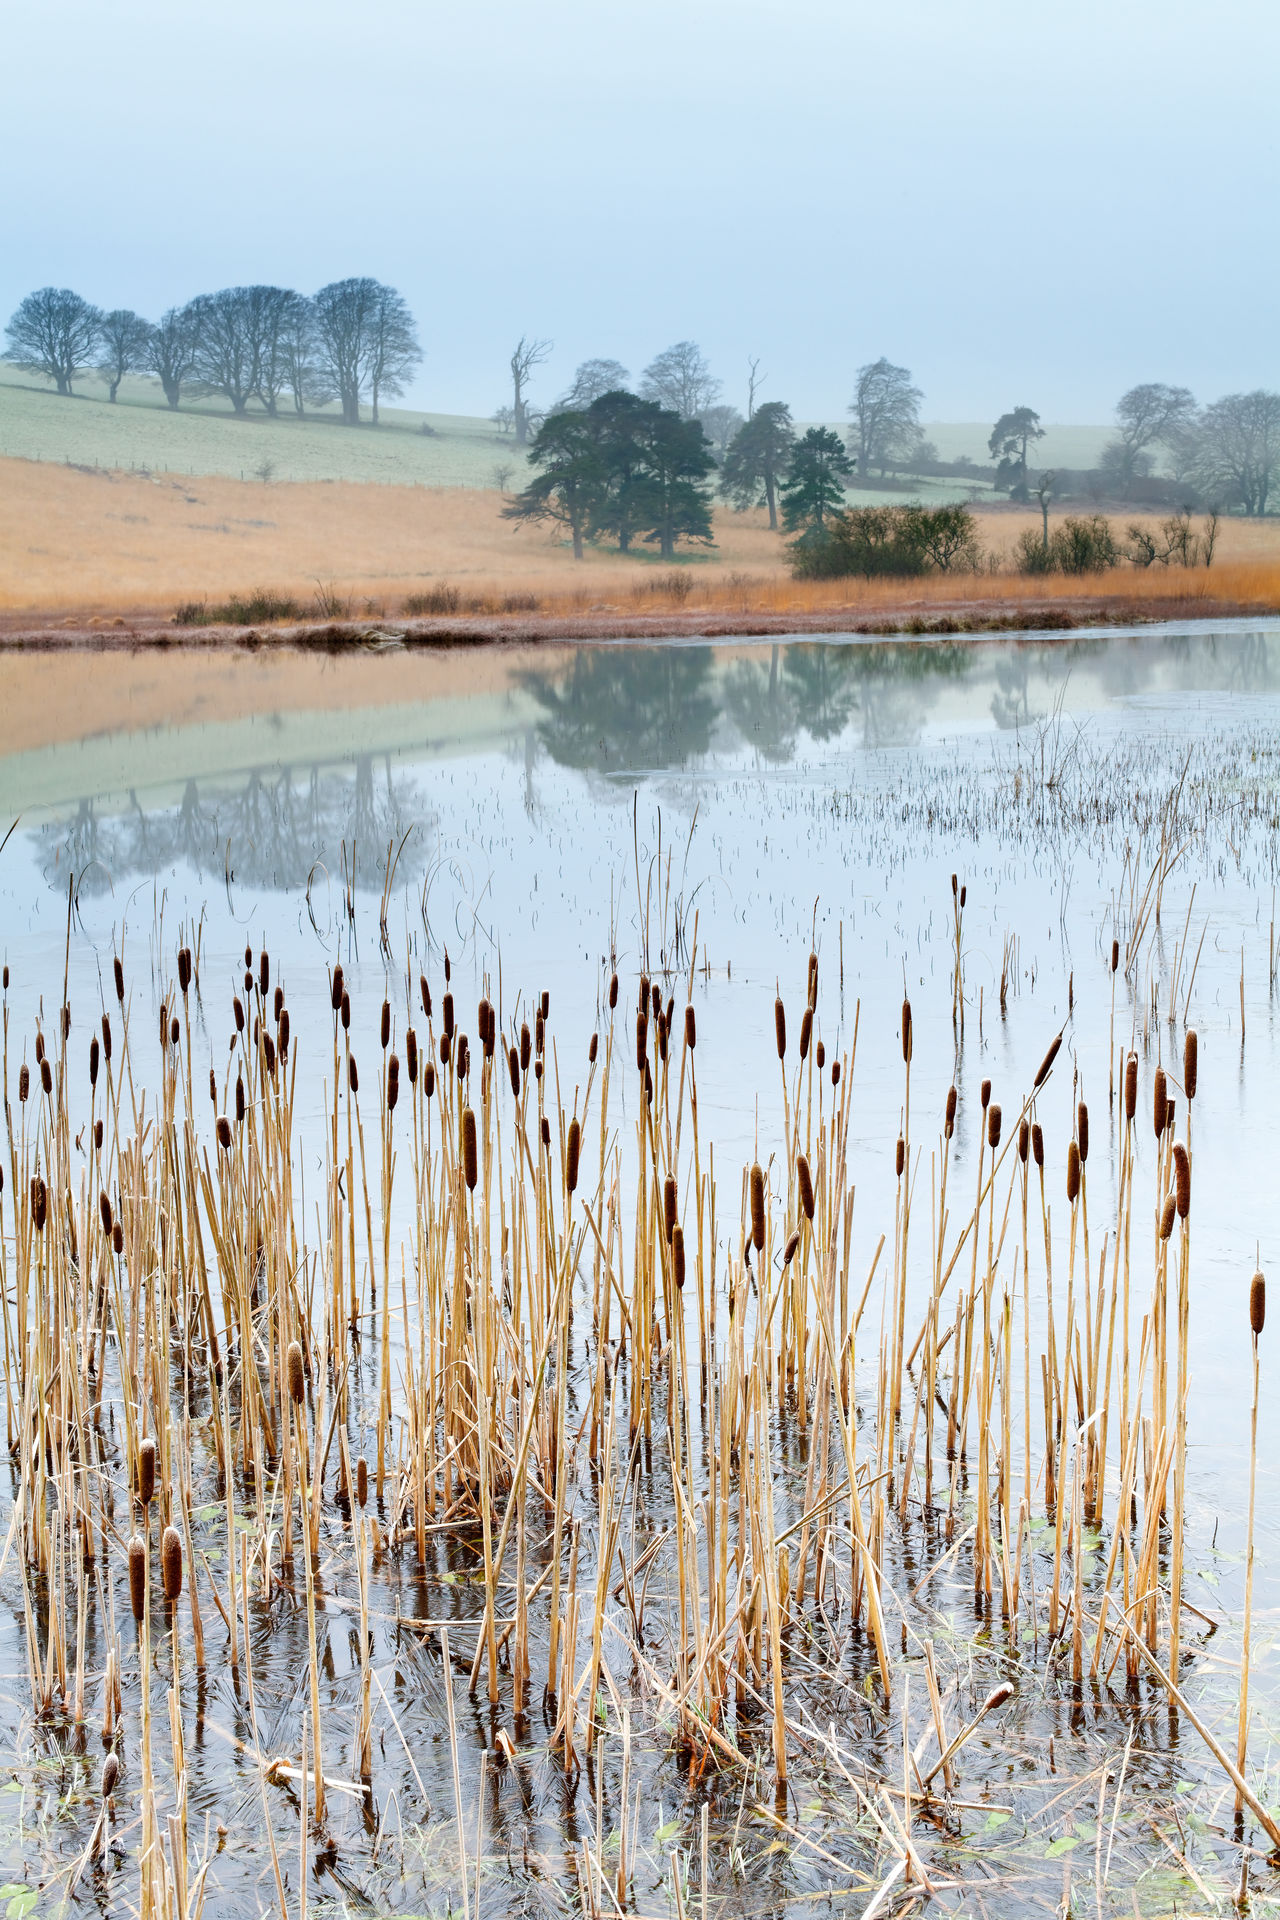 Beauty In Nature Cold Temperature Day Grass Lake Landscape Mendip Hills Mendips Nature No People Outdoors Plant Priddy Scenics Sky Somerset England Tranquil Scene Tranquility Water Winter